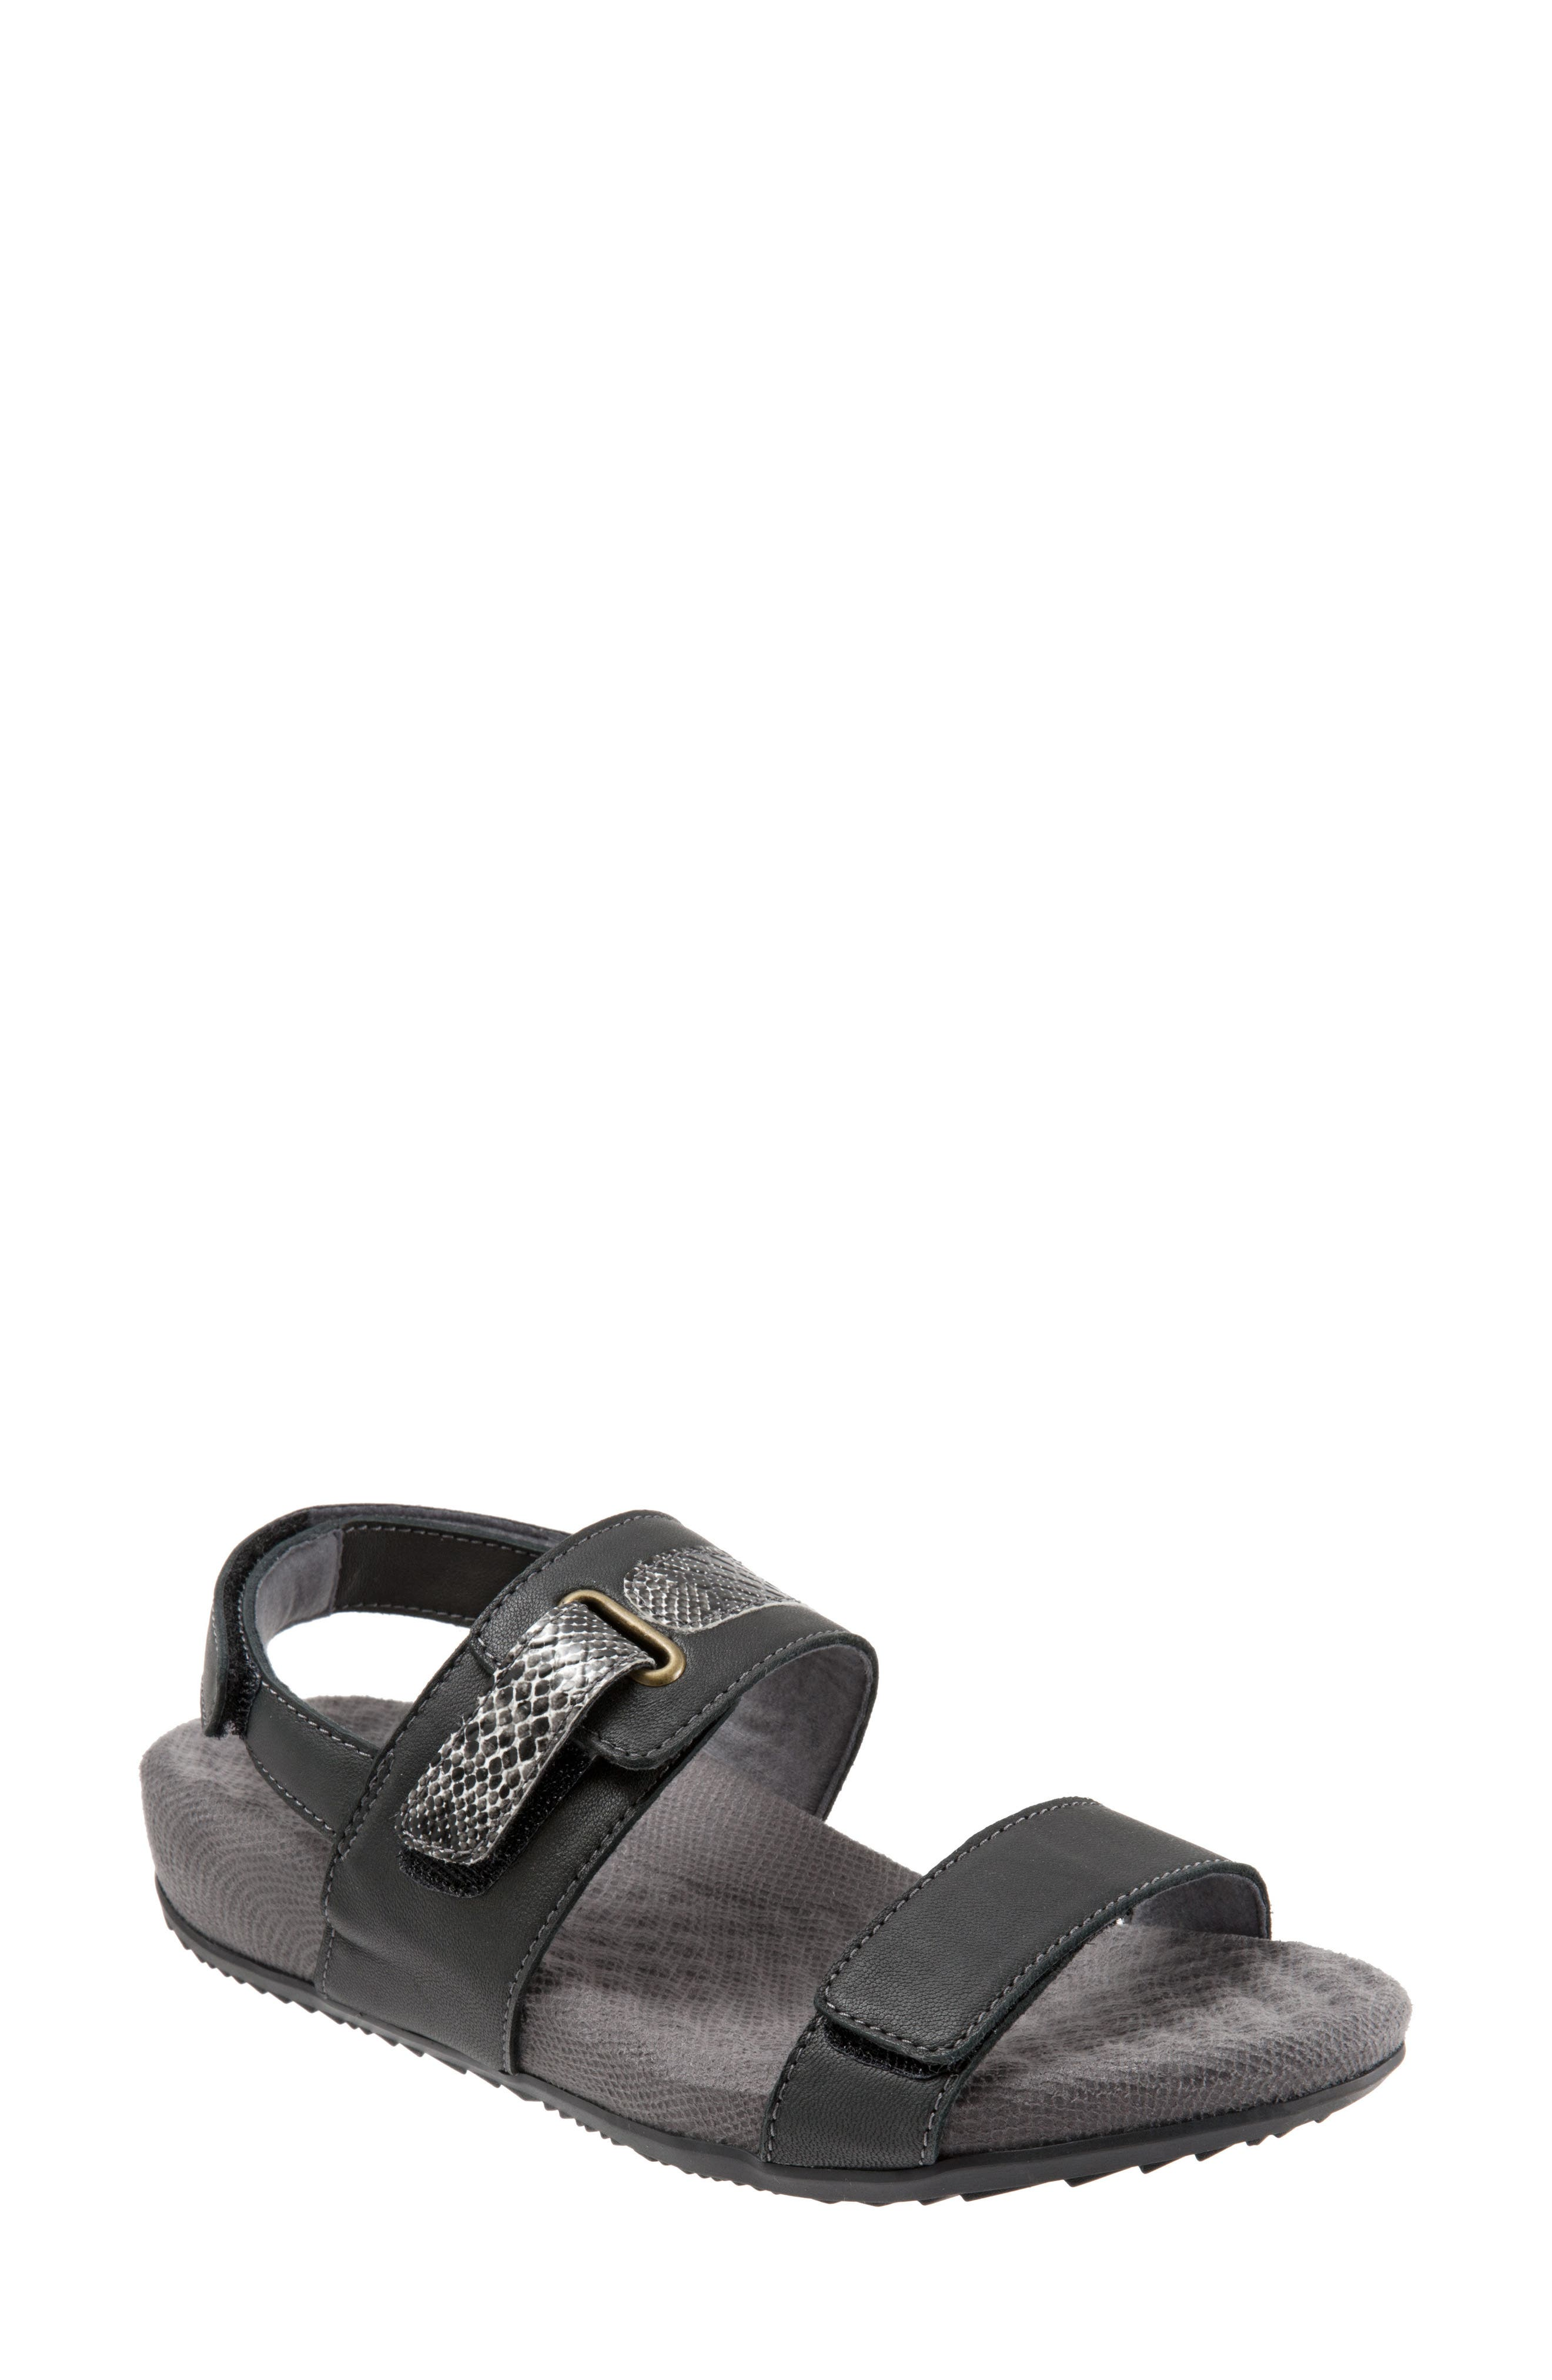 Softwalk Bimmer Sandal- Black